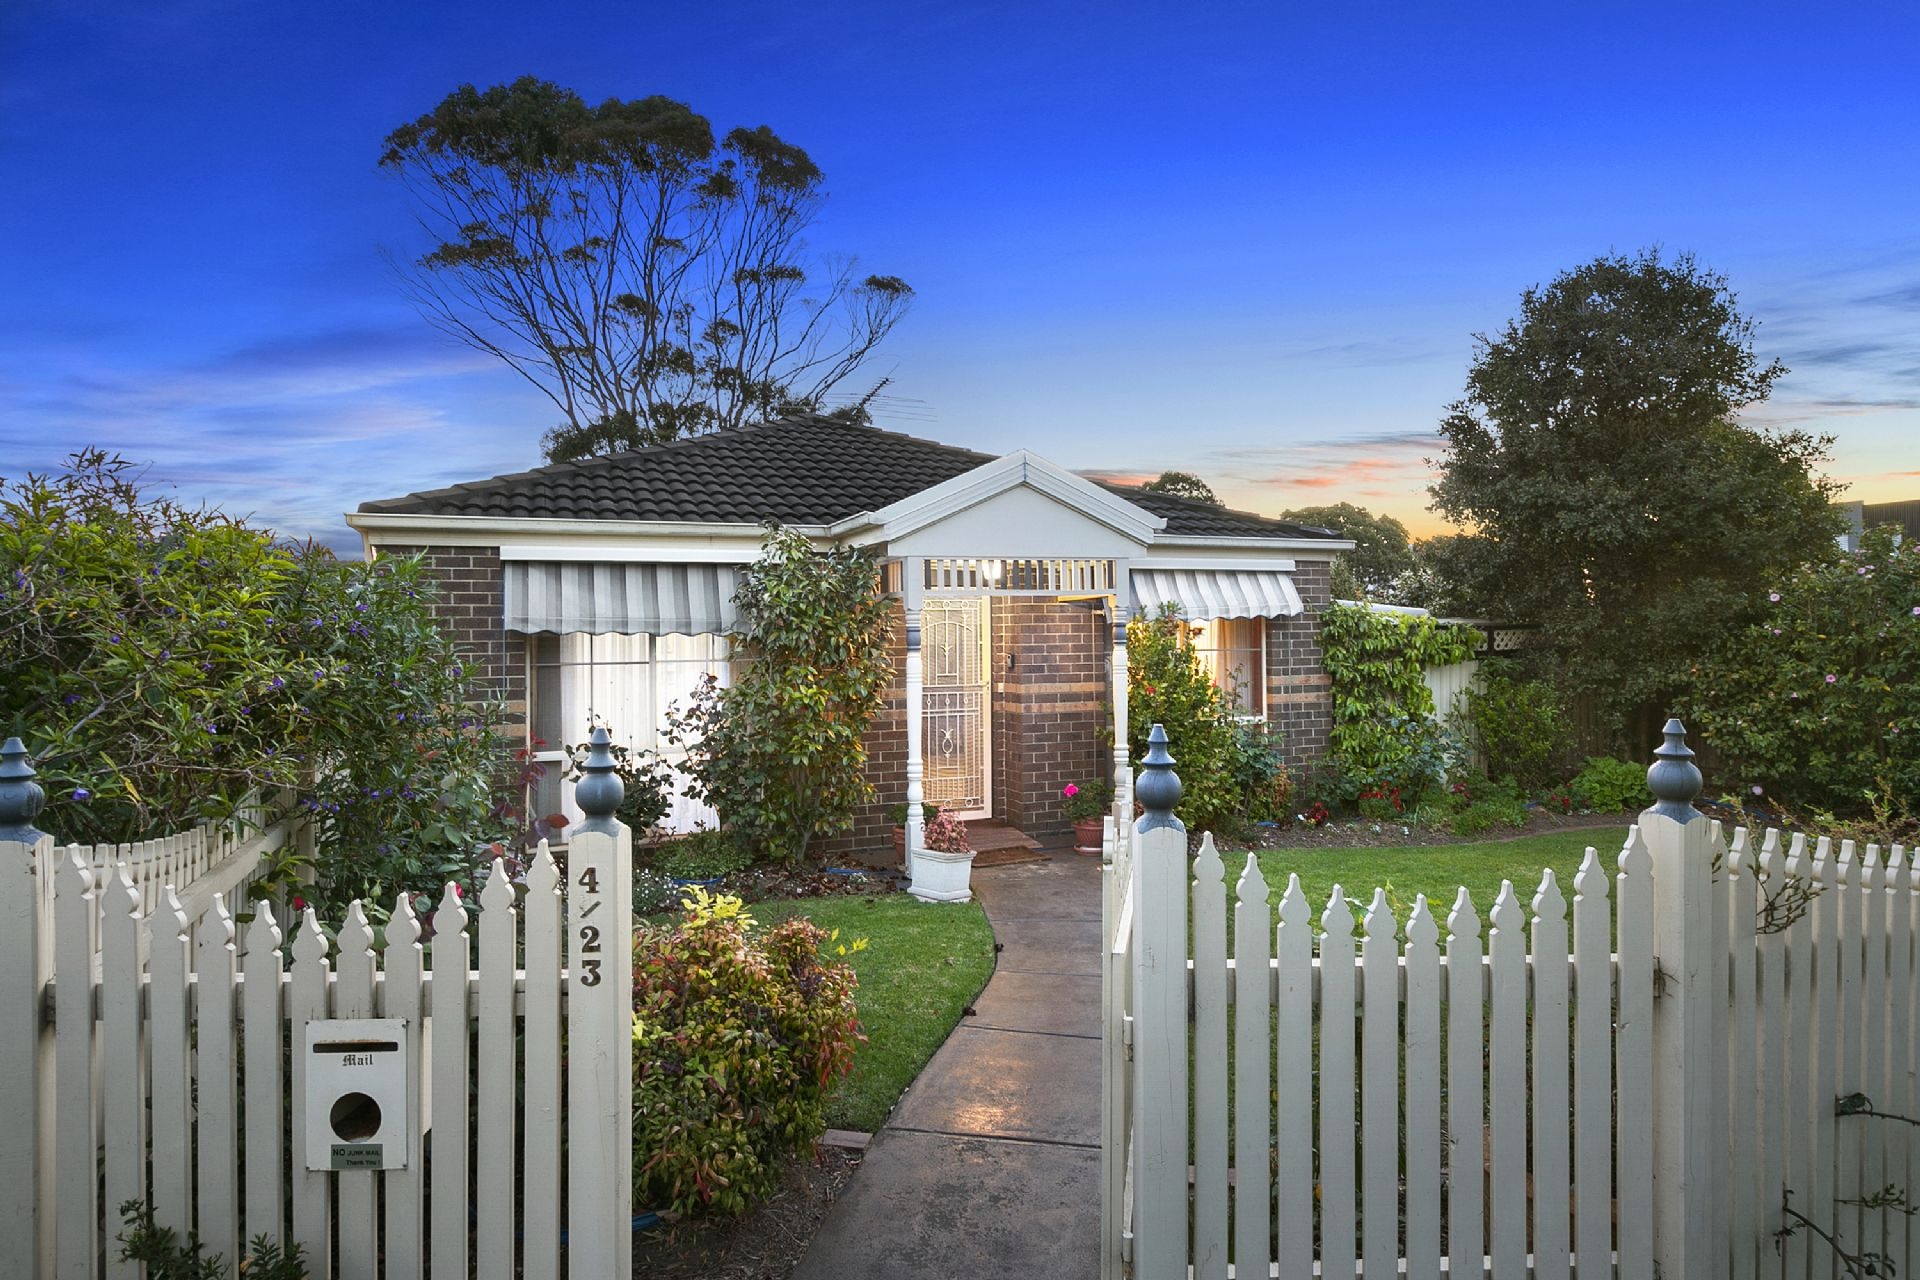 4/23 Swansea Grove, MORNINGTON, VIC, 3931 - Image